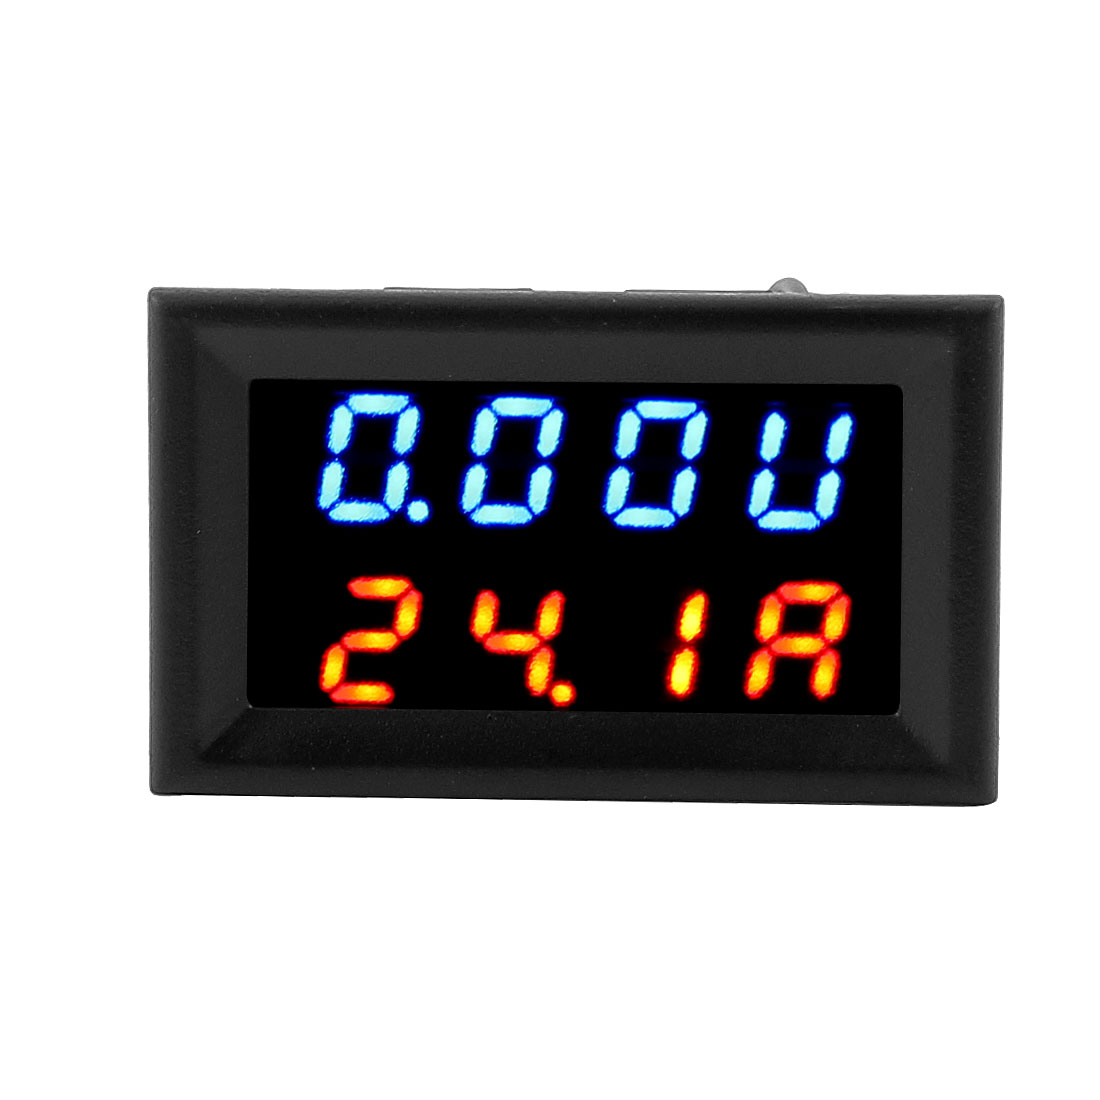 DC 0-100V 0-50A Blue Red LED Dual Digital Display Panel Voltmeter Ammeter Meter